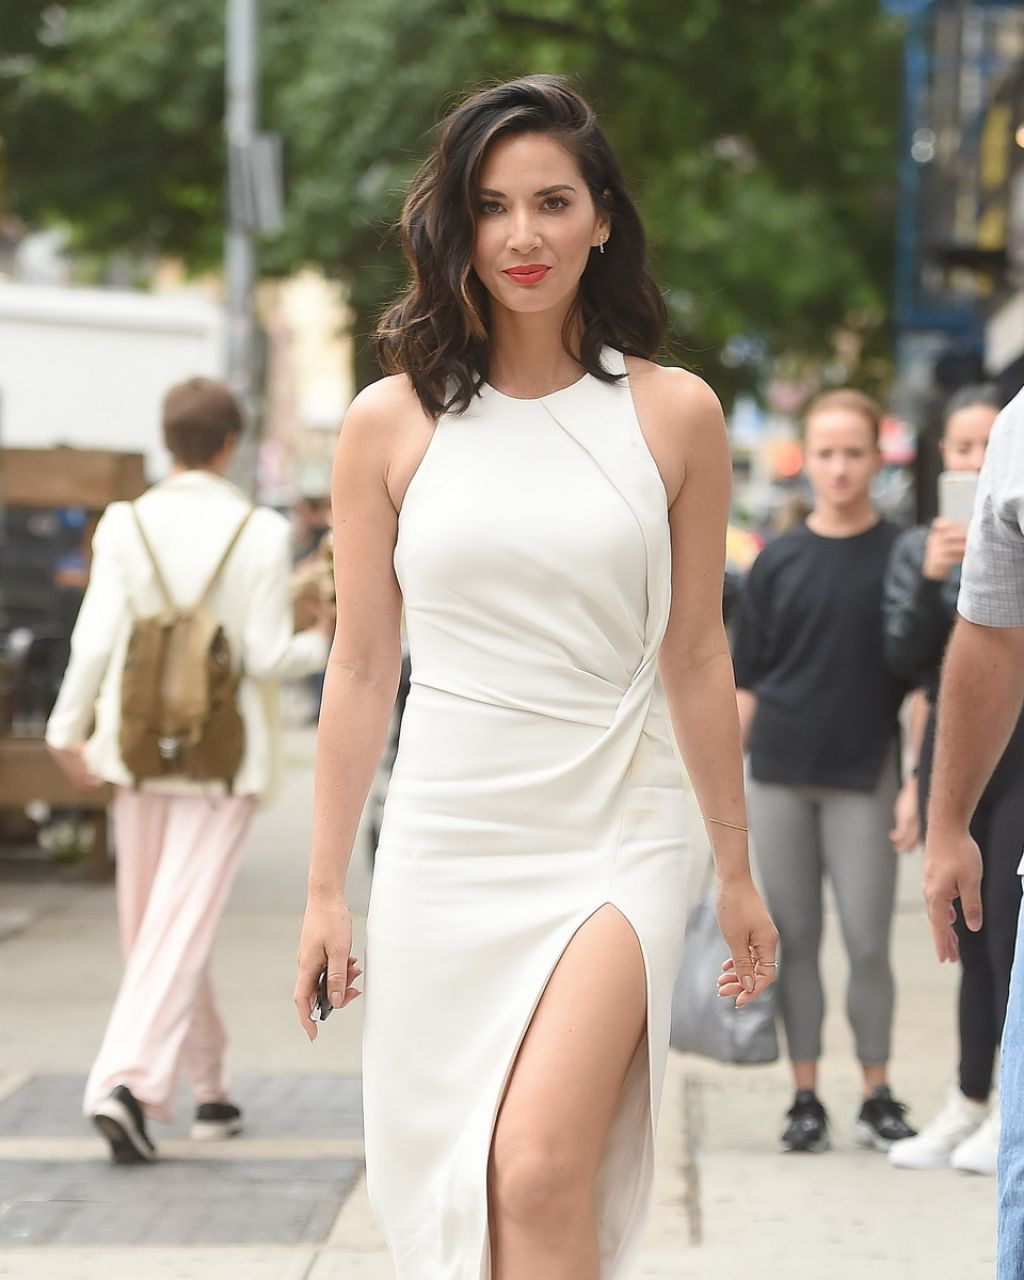 Olivia Munn sexy white dress and heels